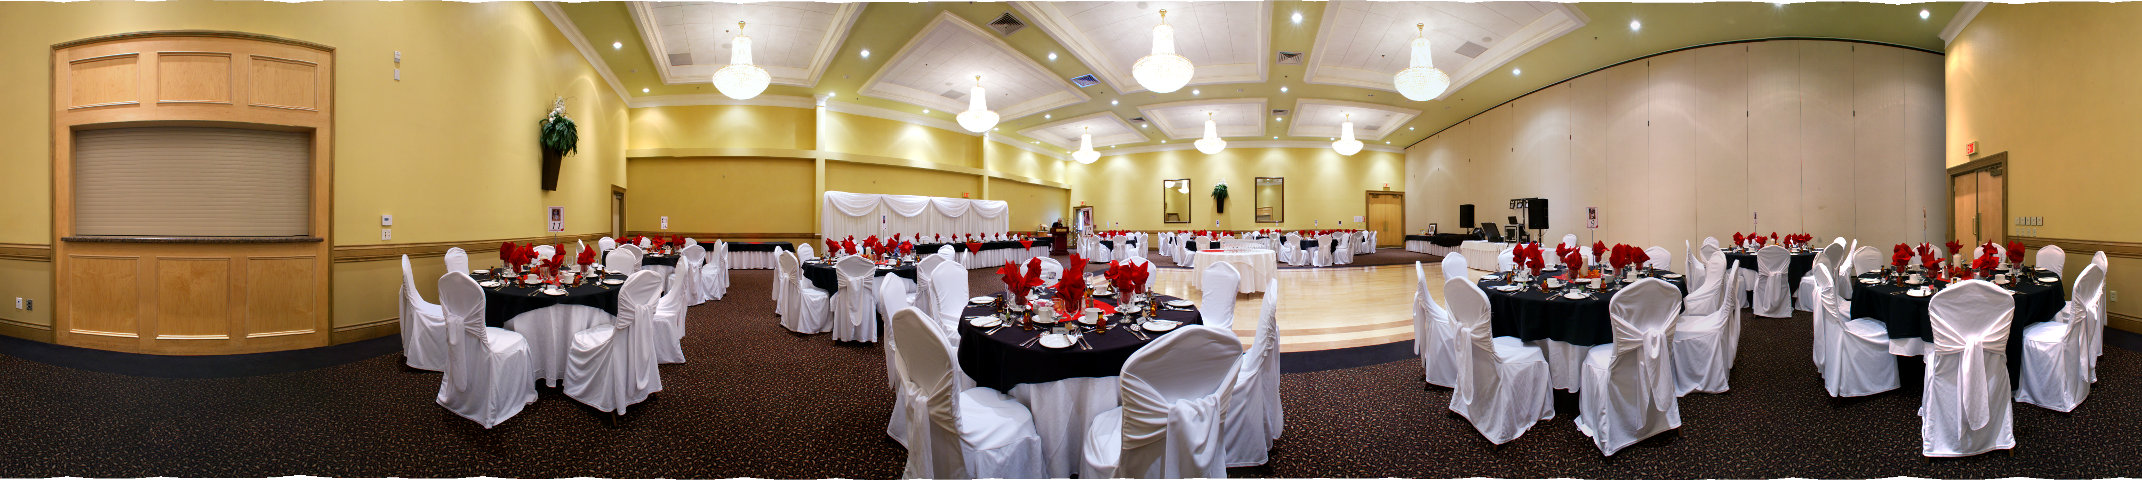 wedding reception dinner in hall c with red table cloths